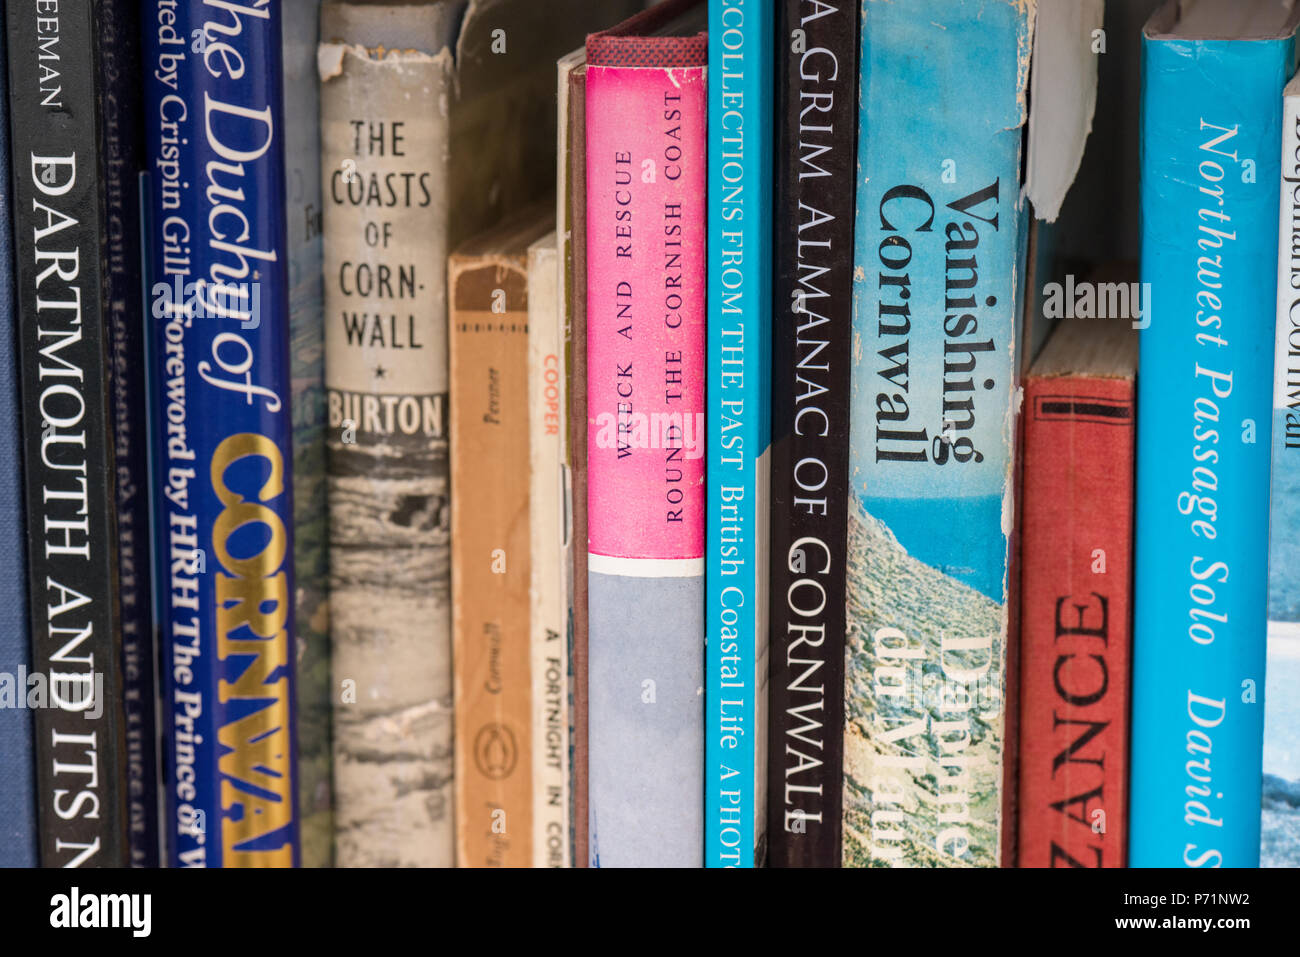 a bookshelf full of books relating to cornwall and travel. - Stock Image